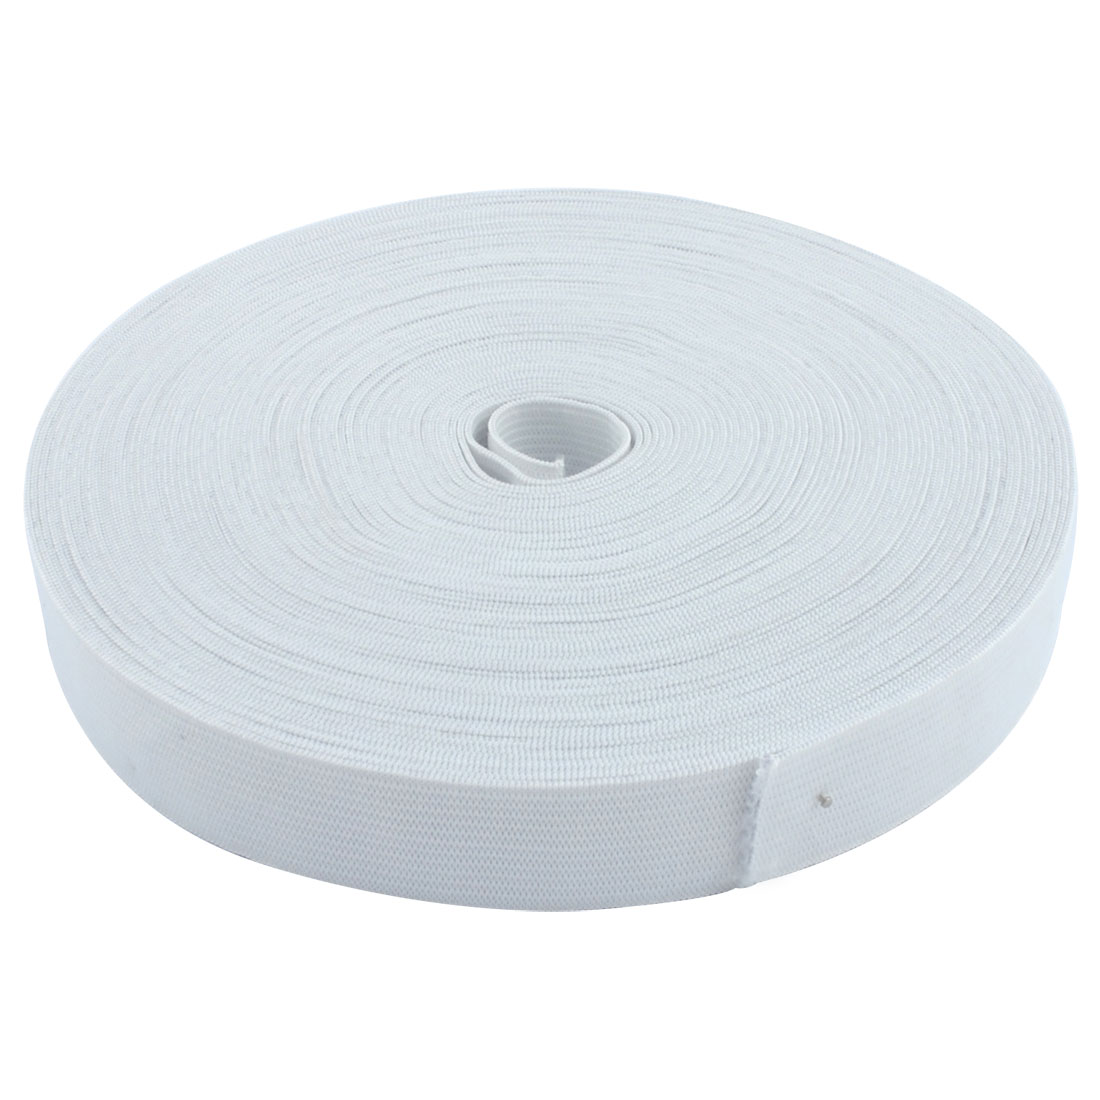 Sewing Trousers Pants Clothing Elastic String Strap Band White 19M 62Ft Long